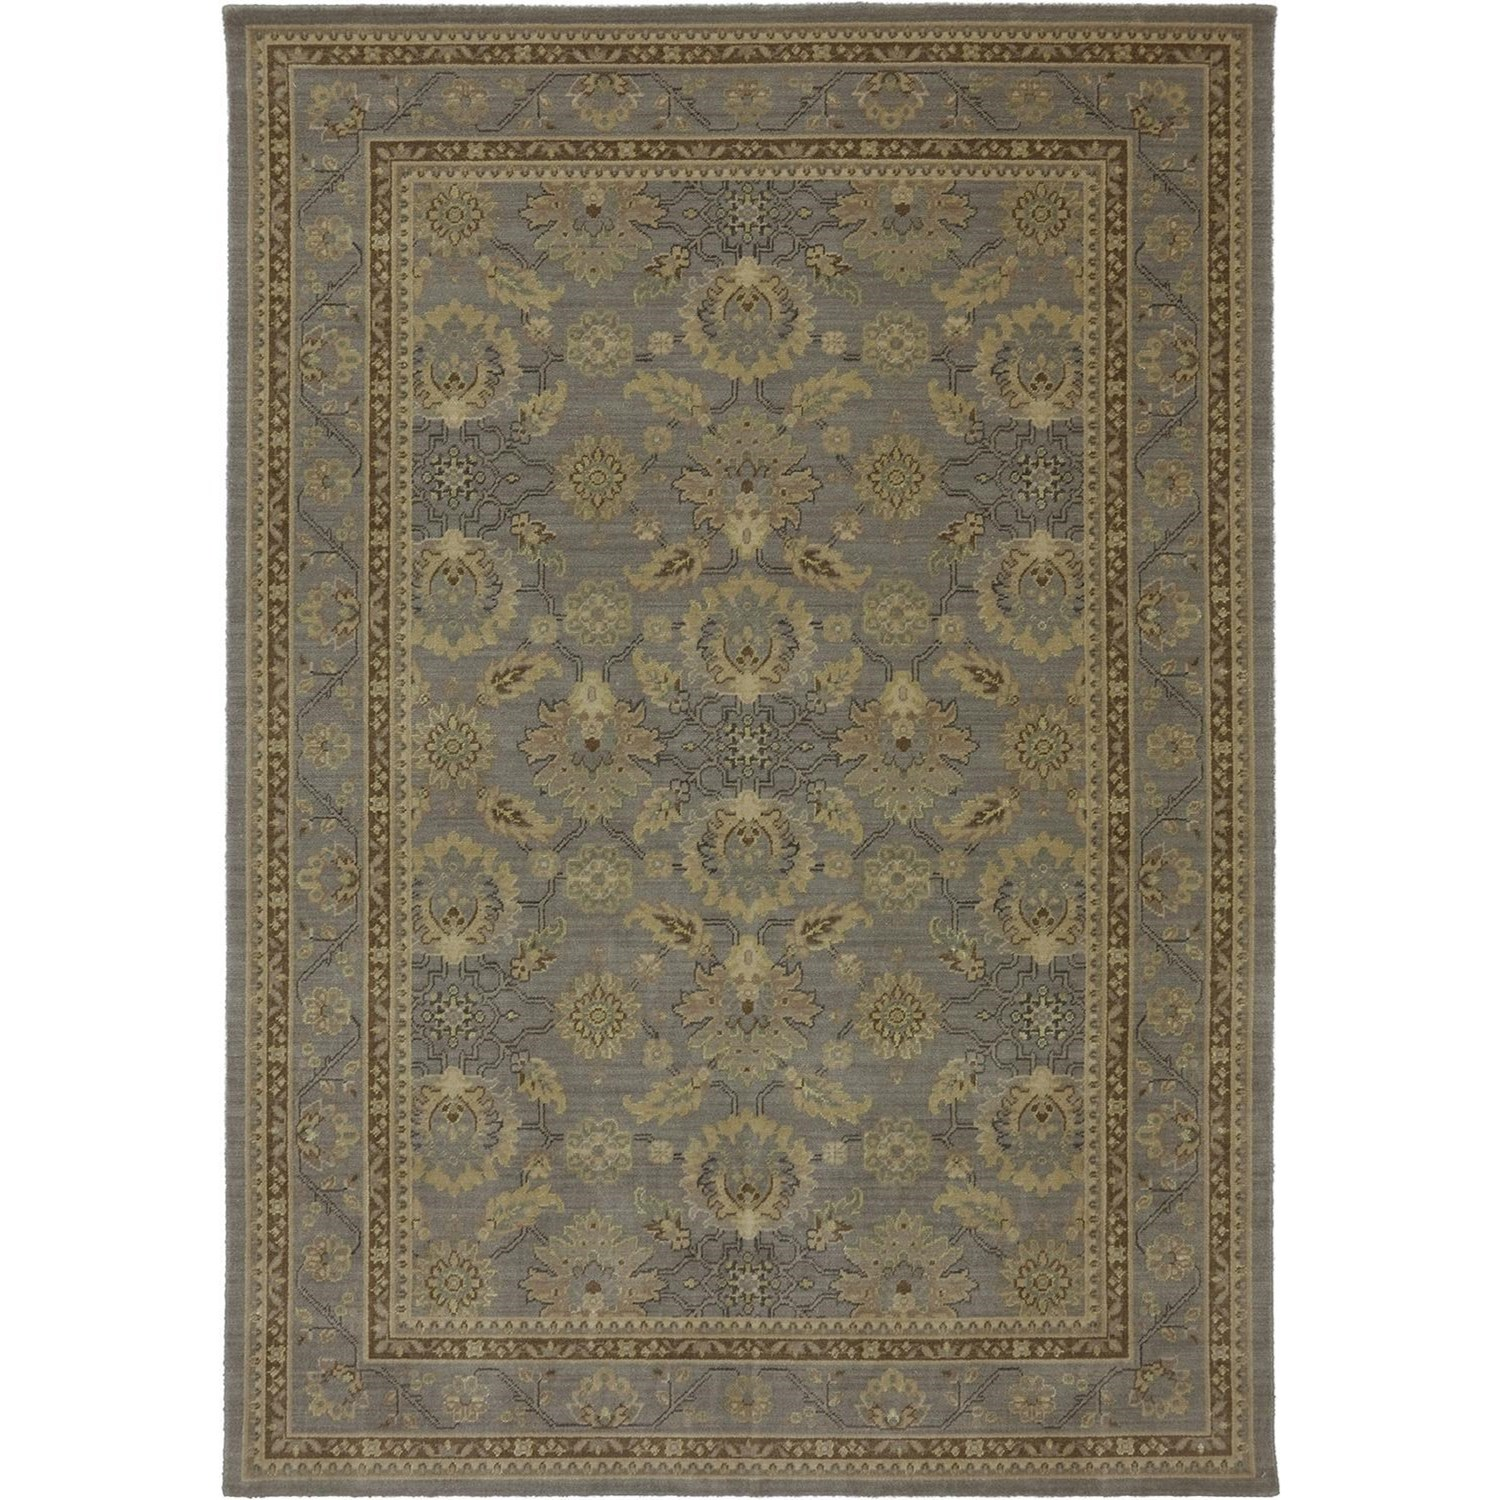 Karastan Rugs Evanescent 8'6x11'6 Pescara Gray Rug - Item Number: RG818 471 102138